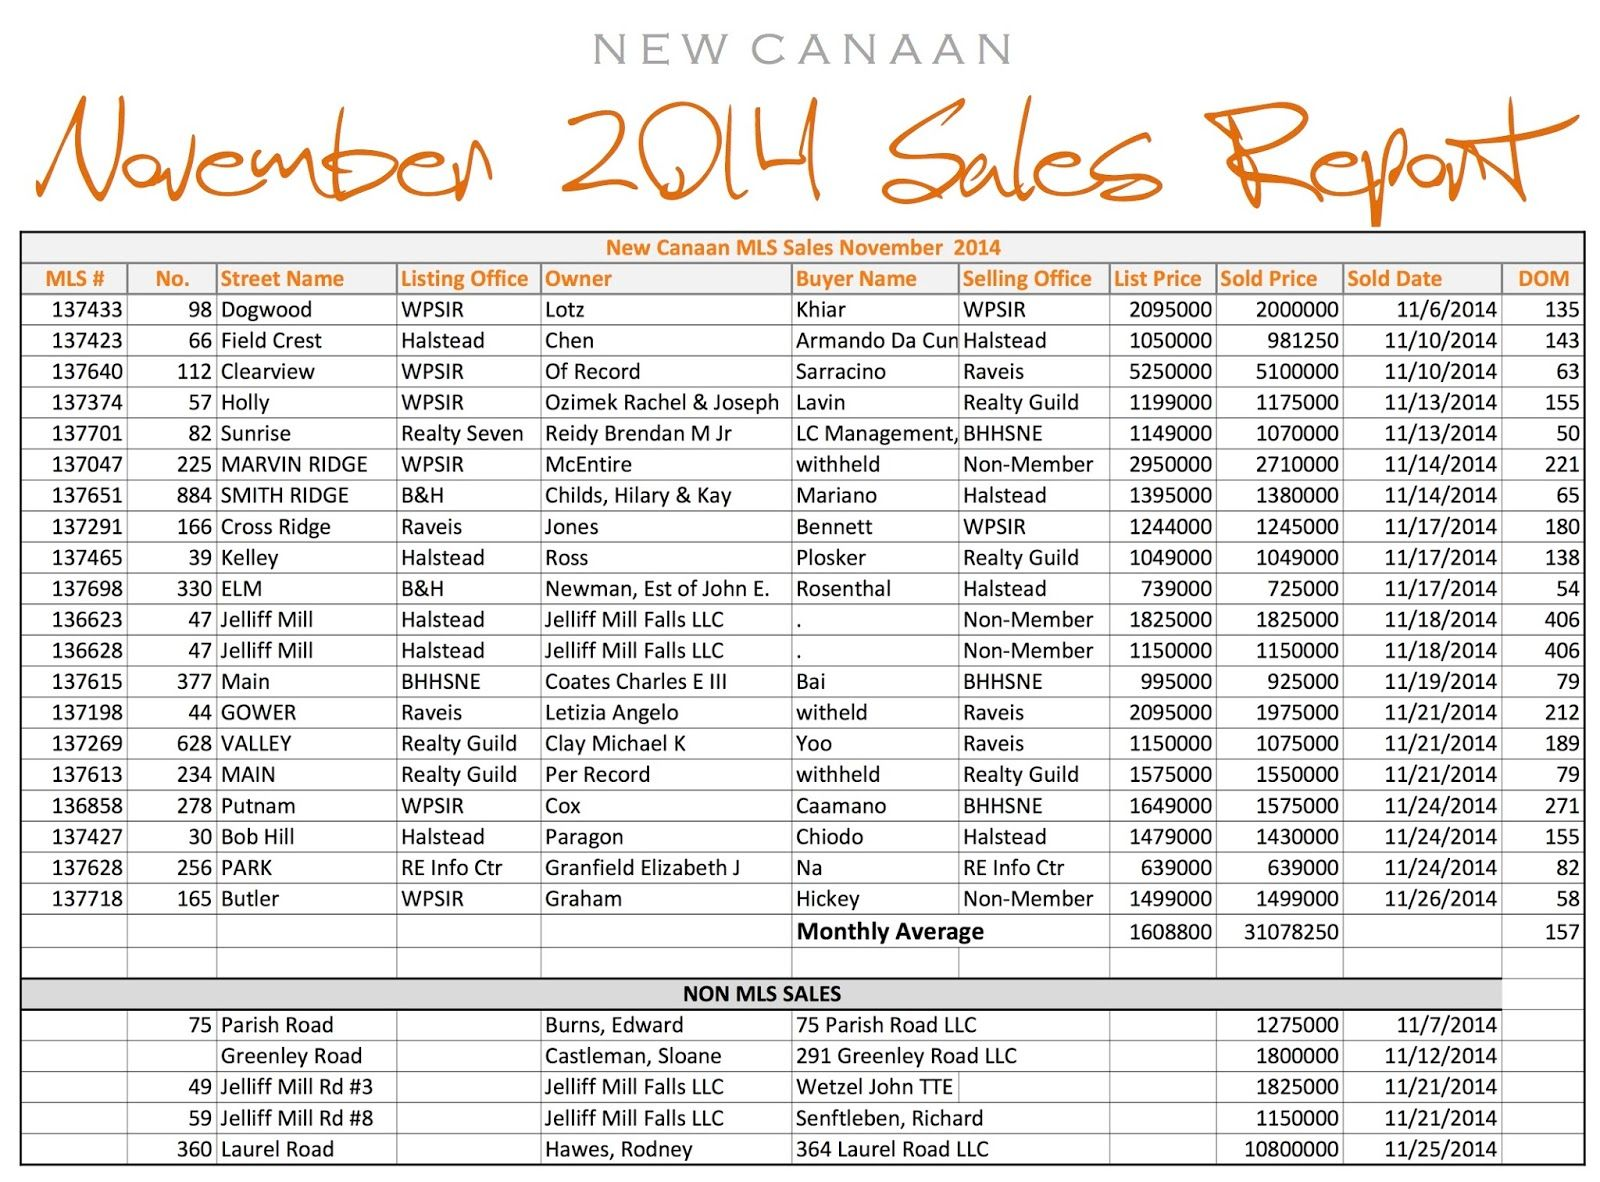 Brokerbeat New Canaan The Who Sold What Report